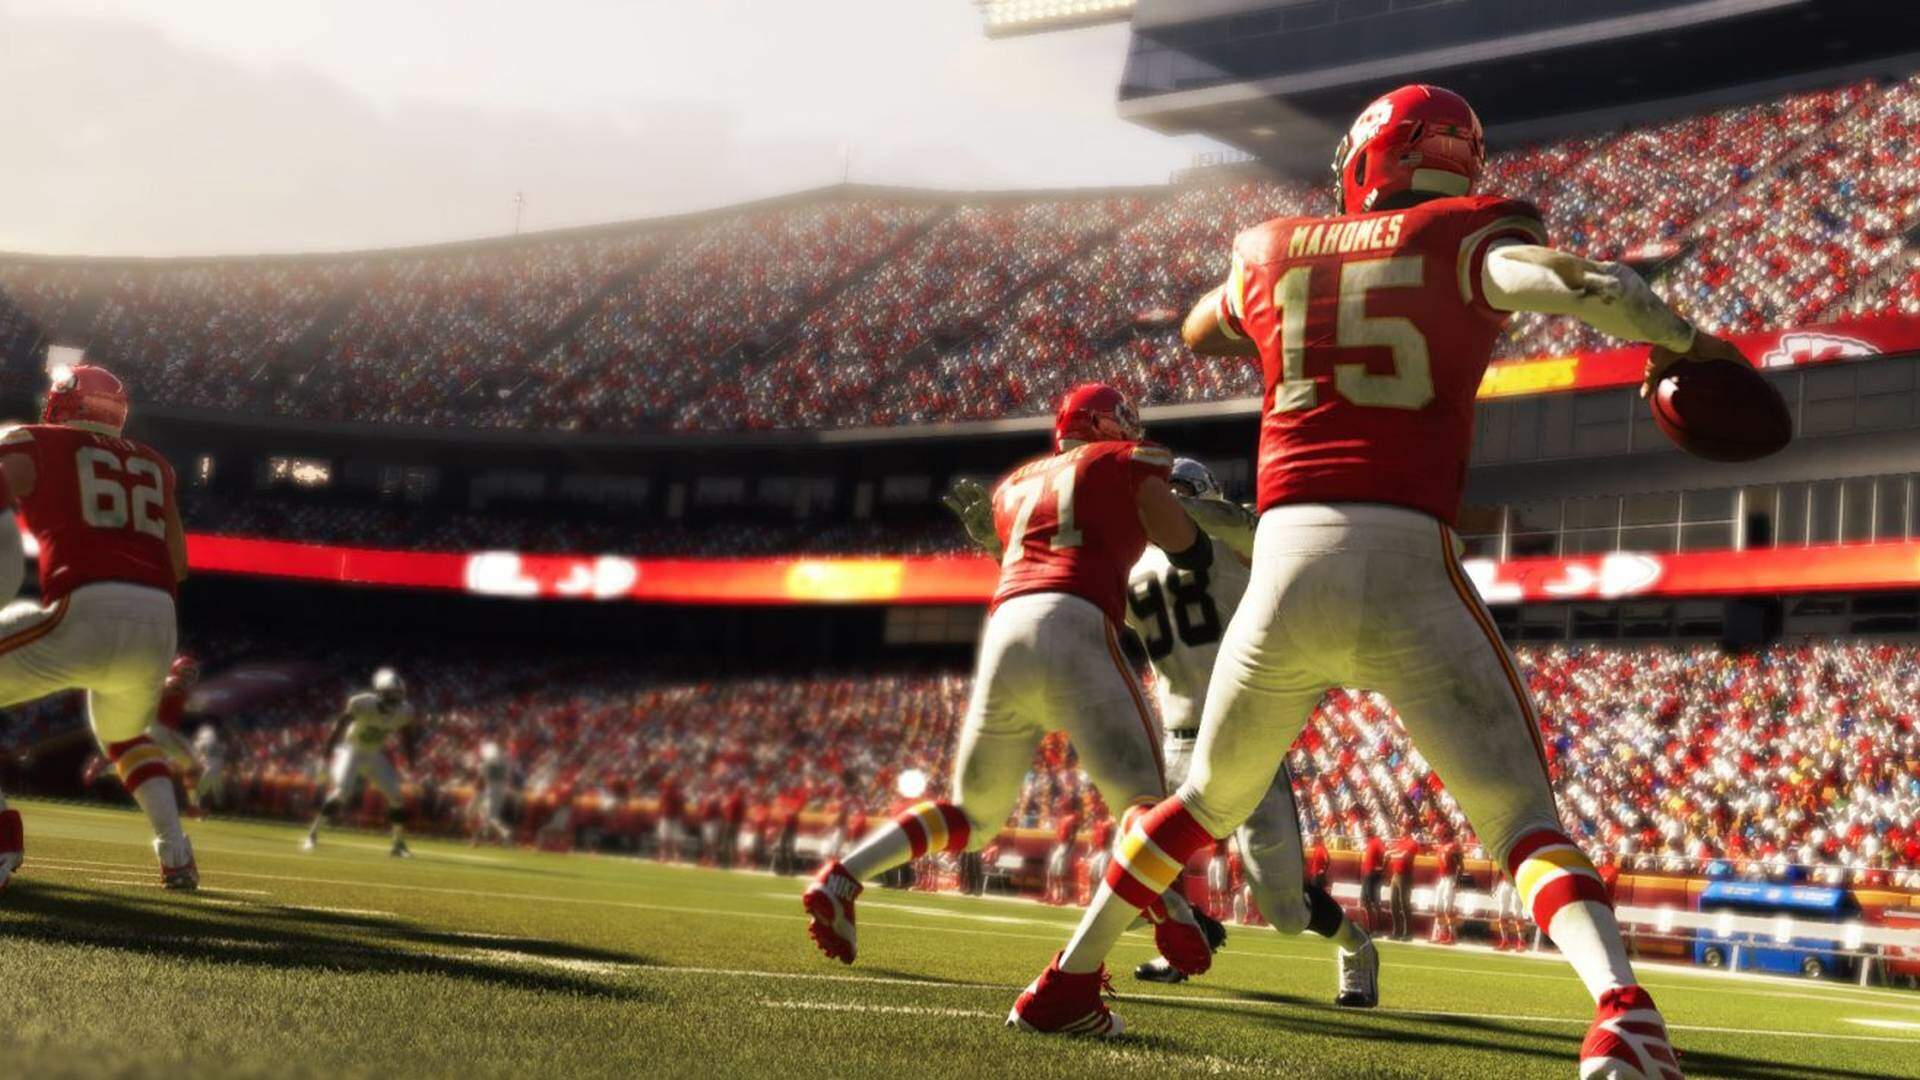 Madden NFL Fans Stir Up Twitter Campaign Over This Year's Slim Franchise Mode Updates